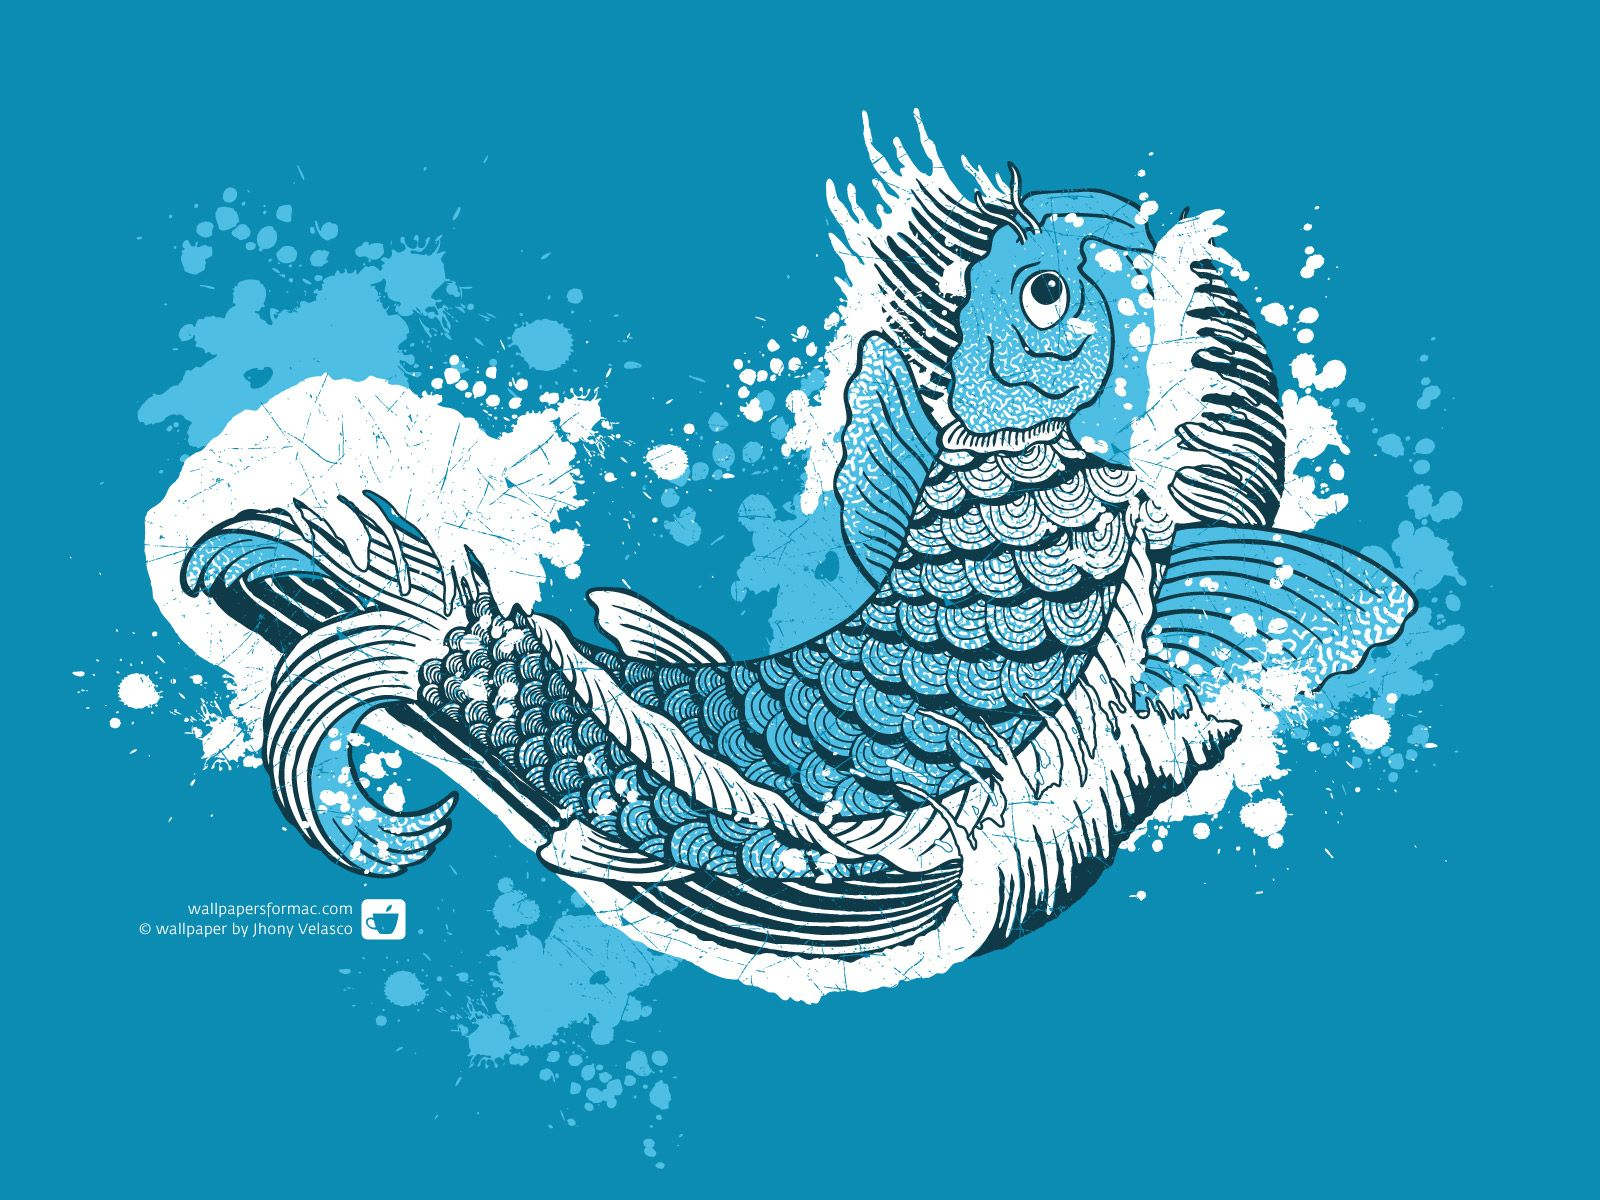 Fish Koi Watercolor Wallpaper, Koi Fish Wallpaper Free